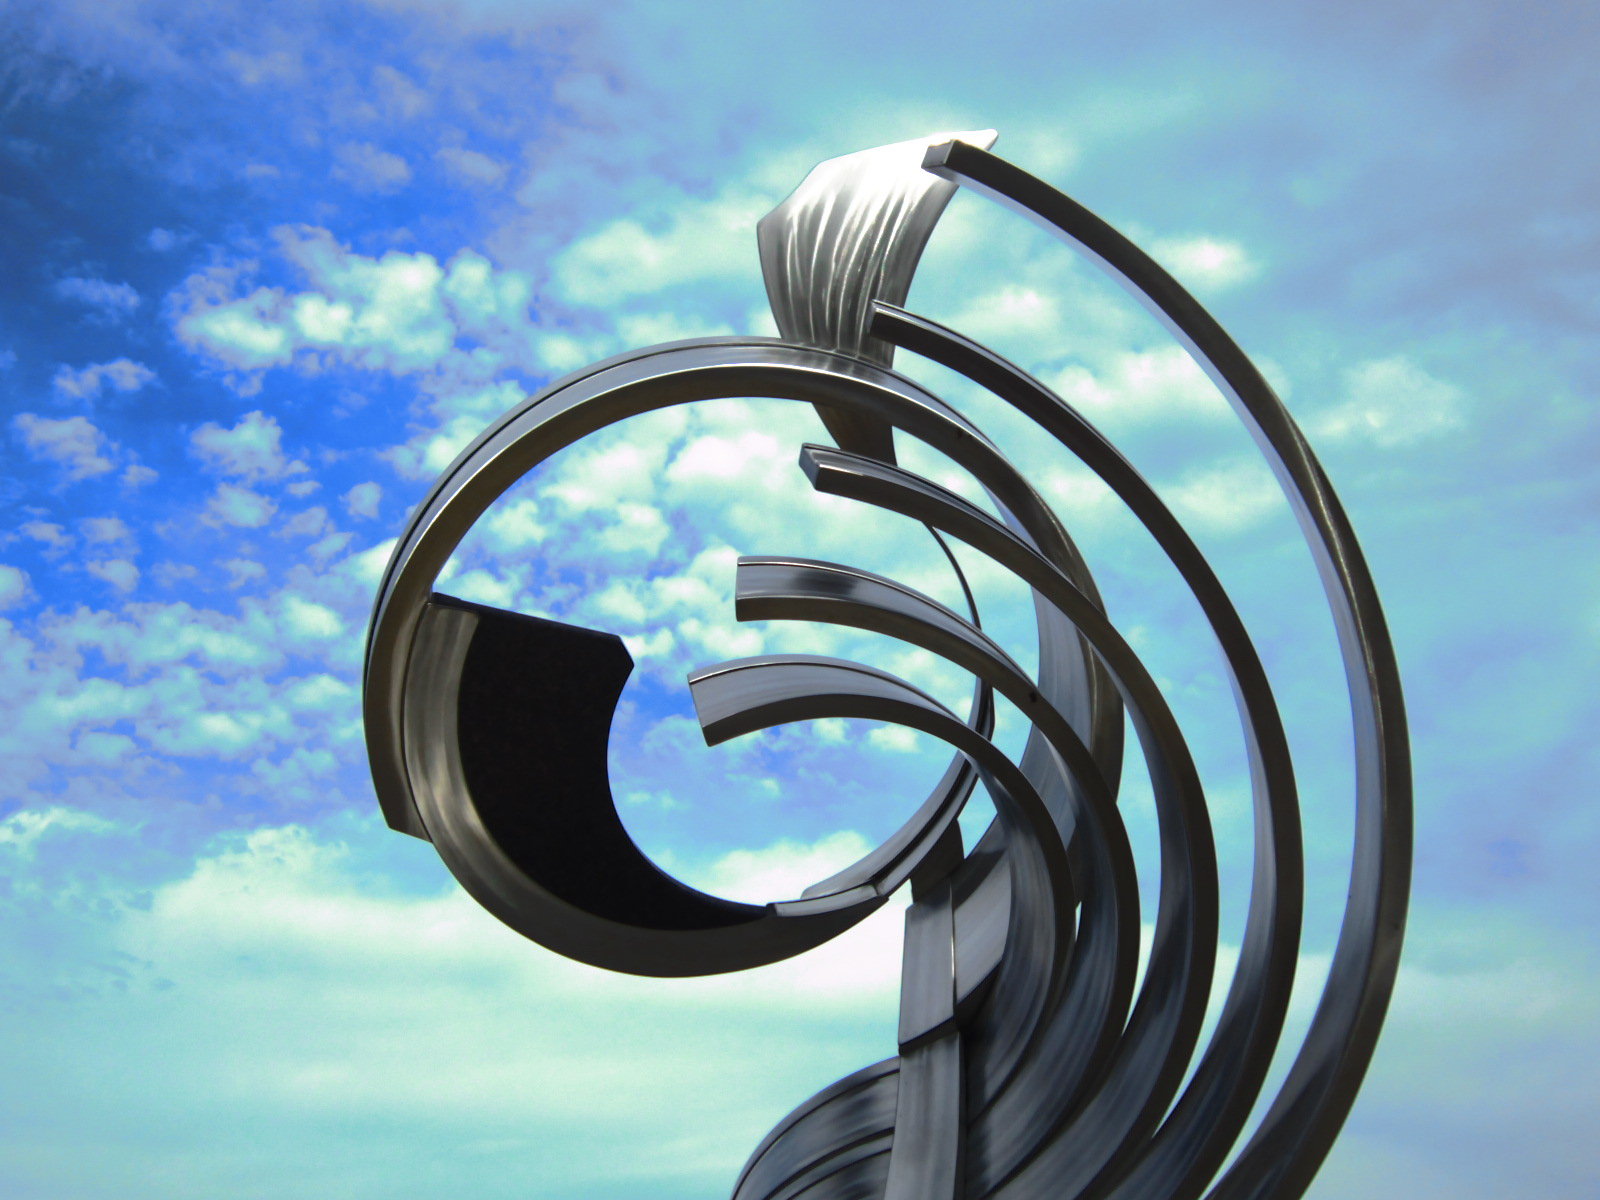 """Sculpture:""""Continuum"""" by Sally Rogers, Public Art Chattanooga, TN   Photo by Megan Swindro"""